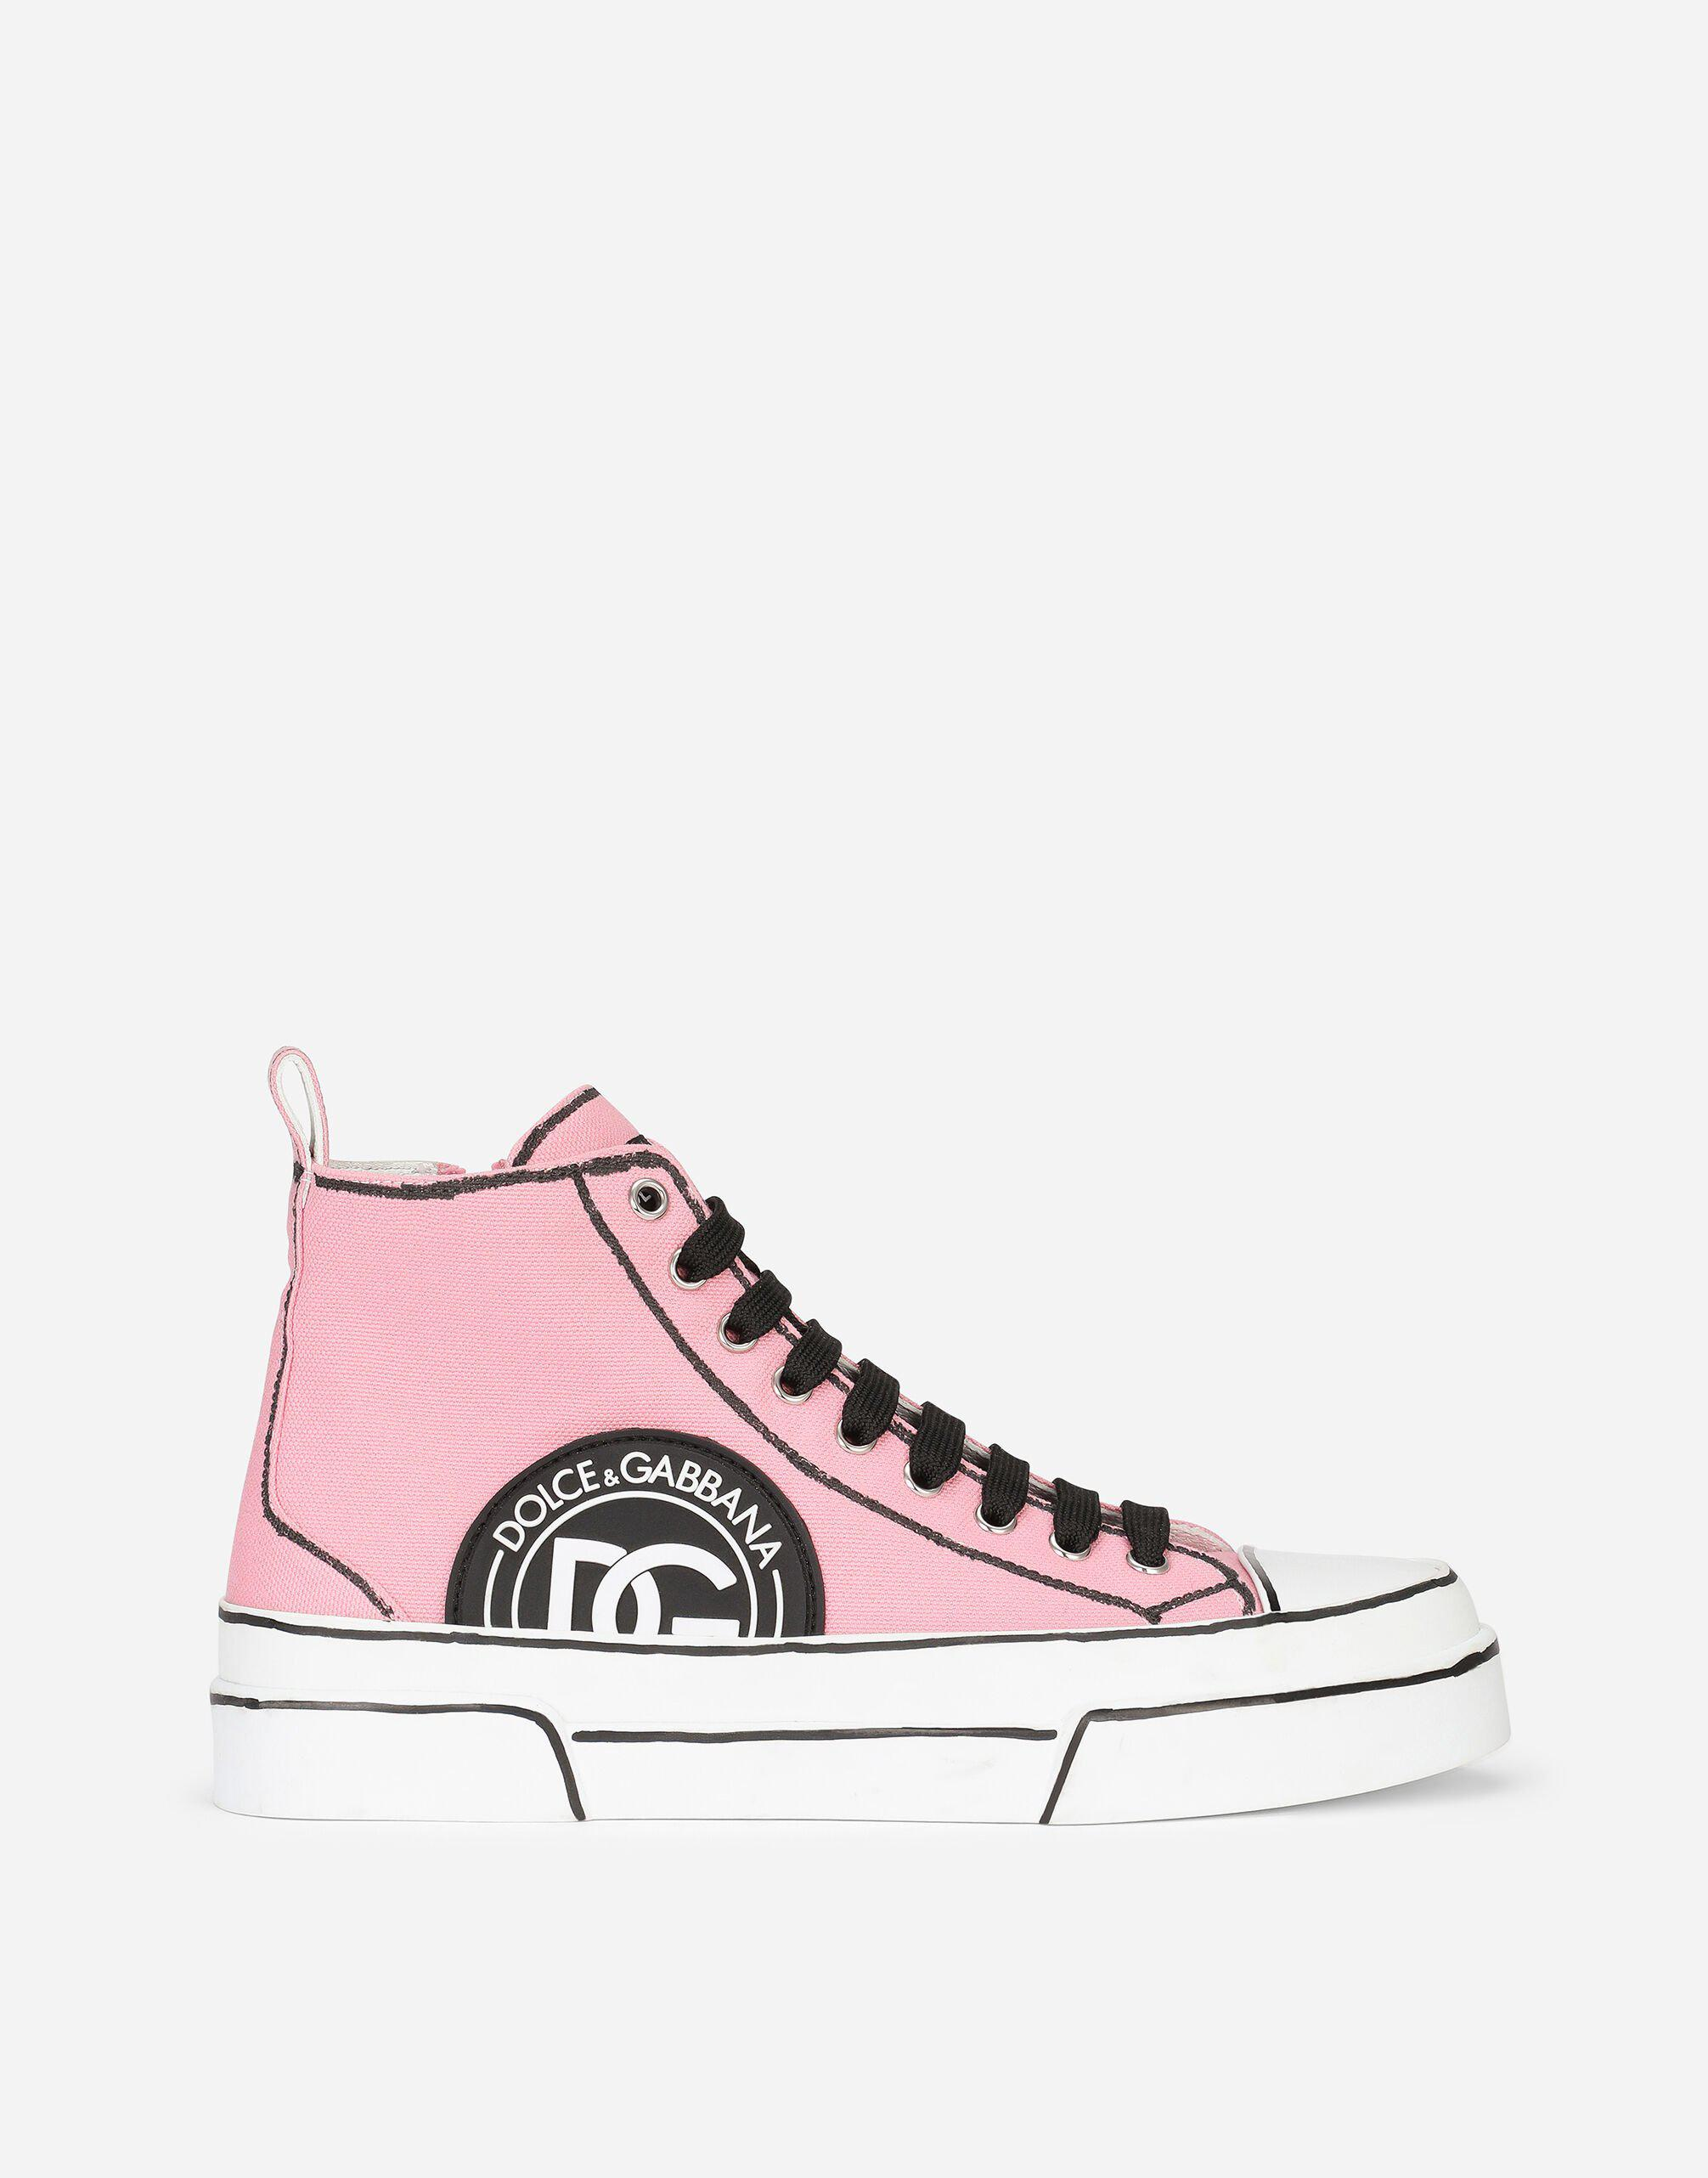 Hand-painted canvas Portofino Light mid-top sneakers